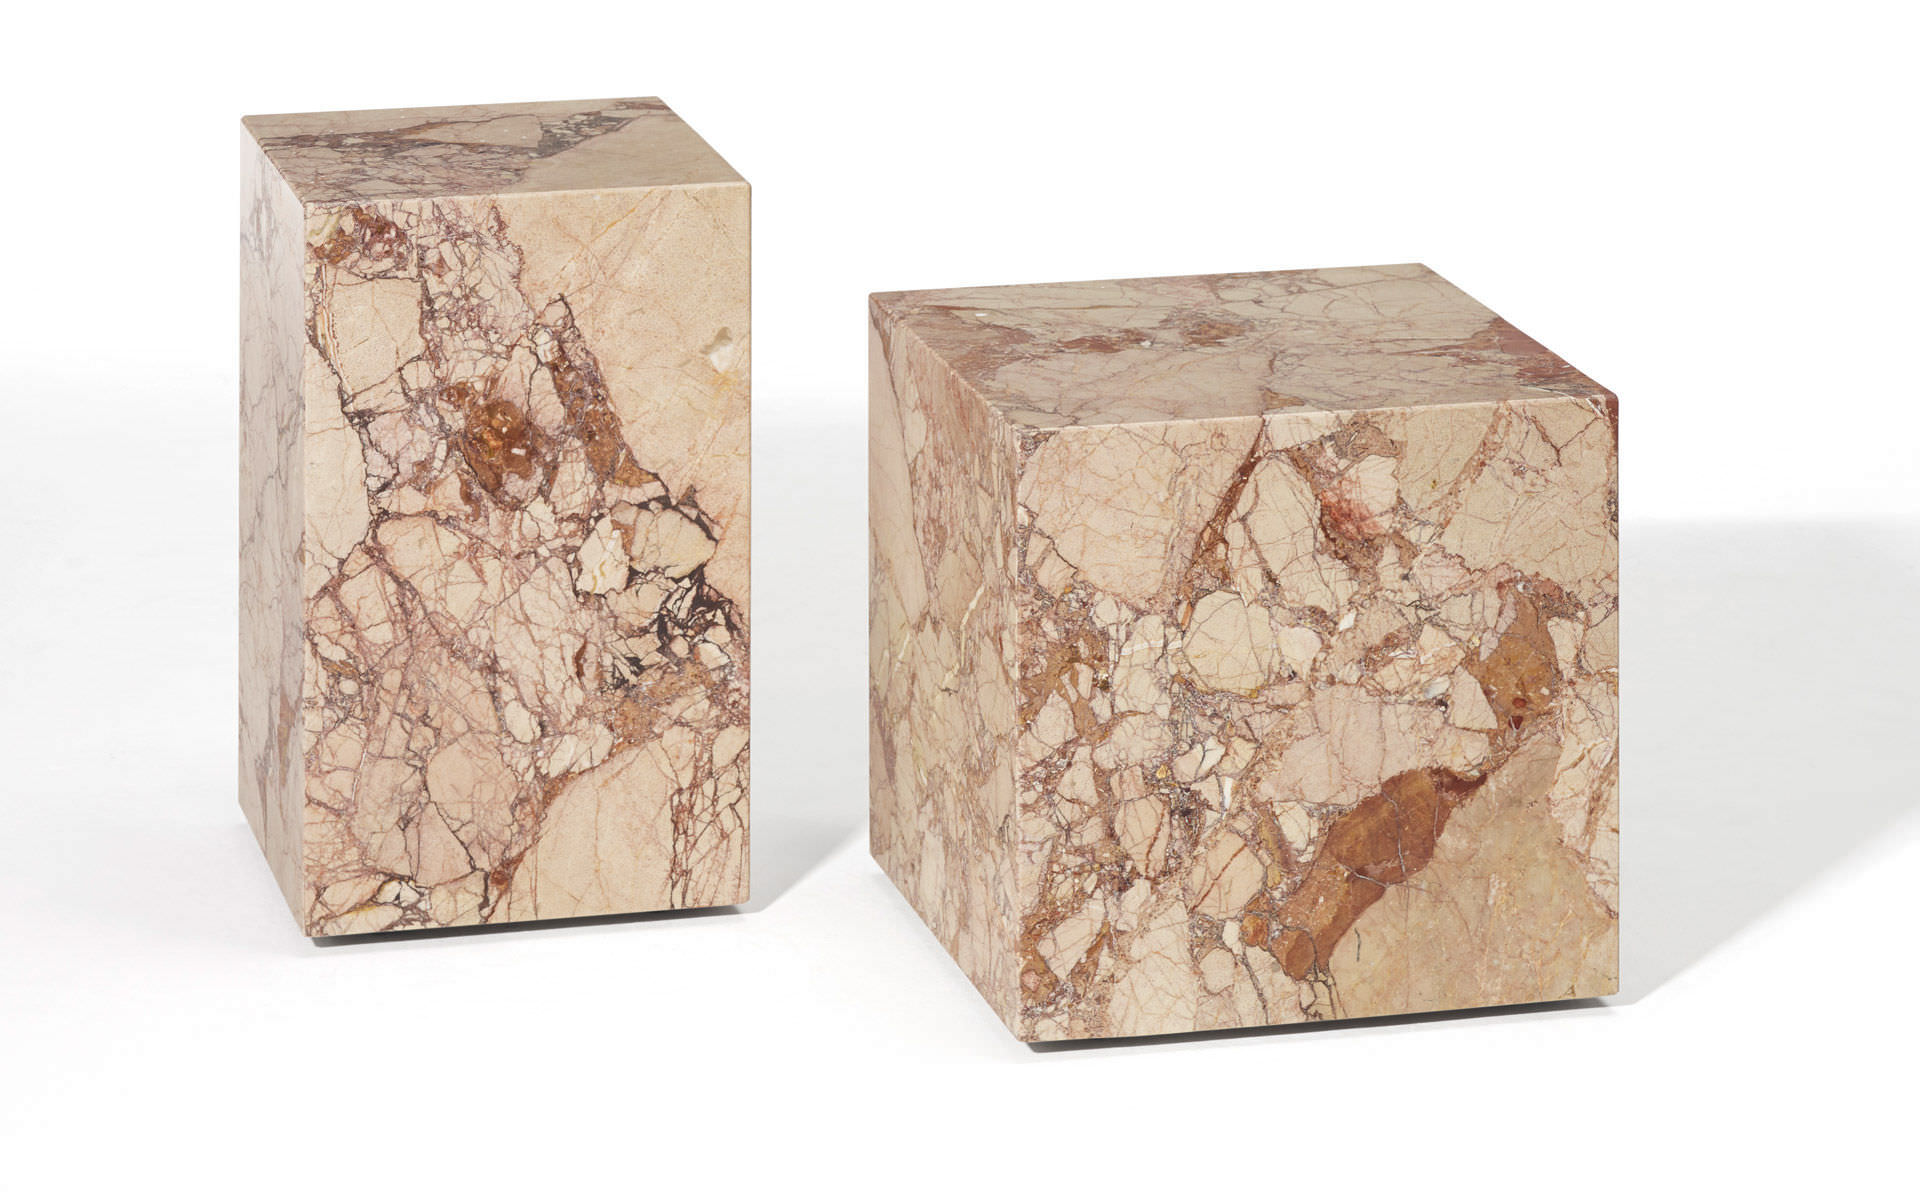 ... Contemporary Side Table / Natural Stone / Cube Shaped 1365 QBIC By  Patric Draenert 2014